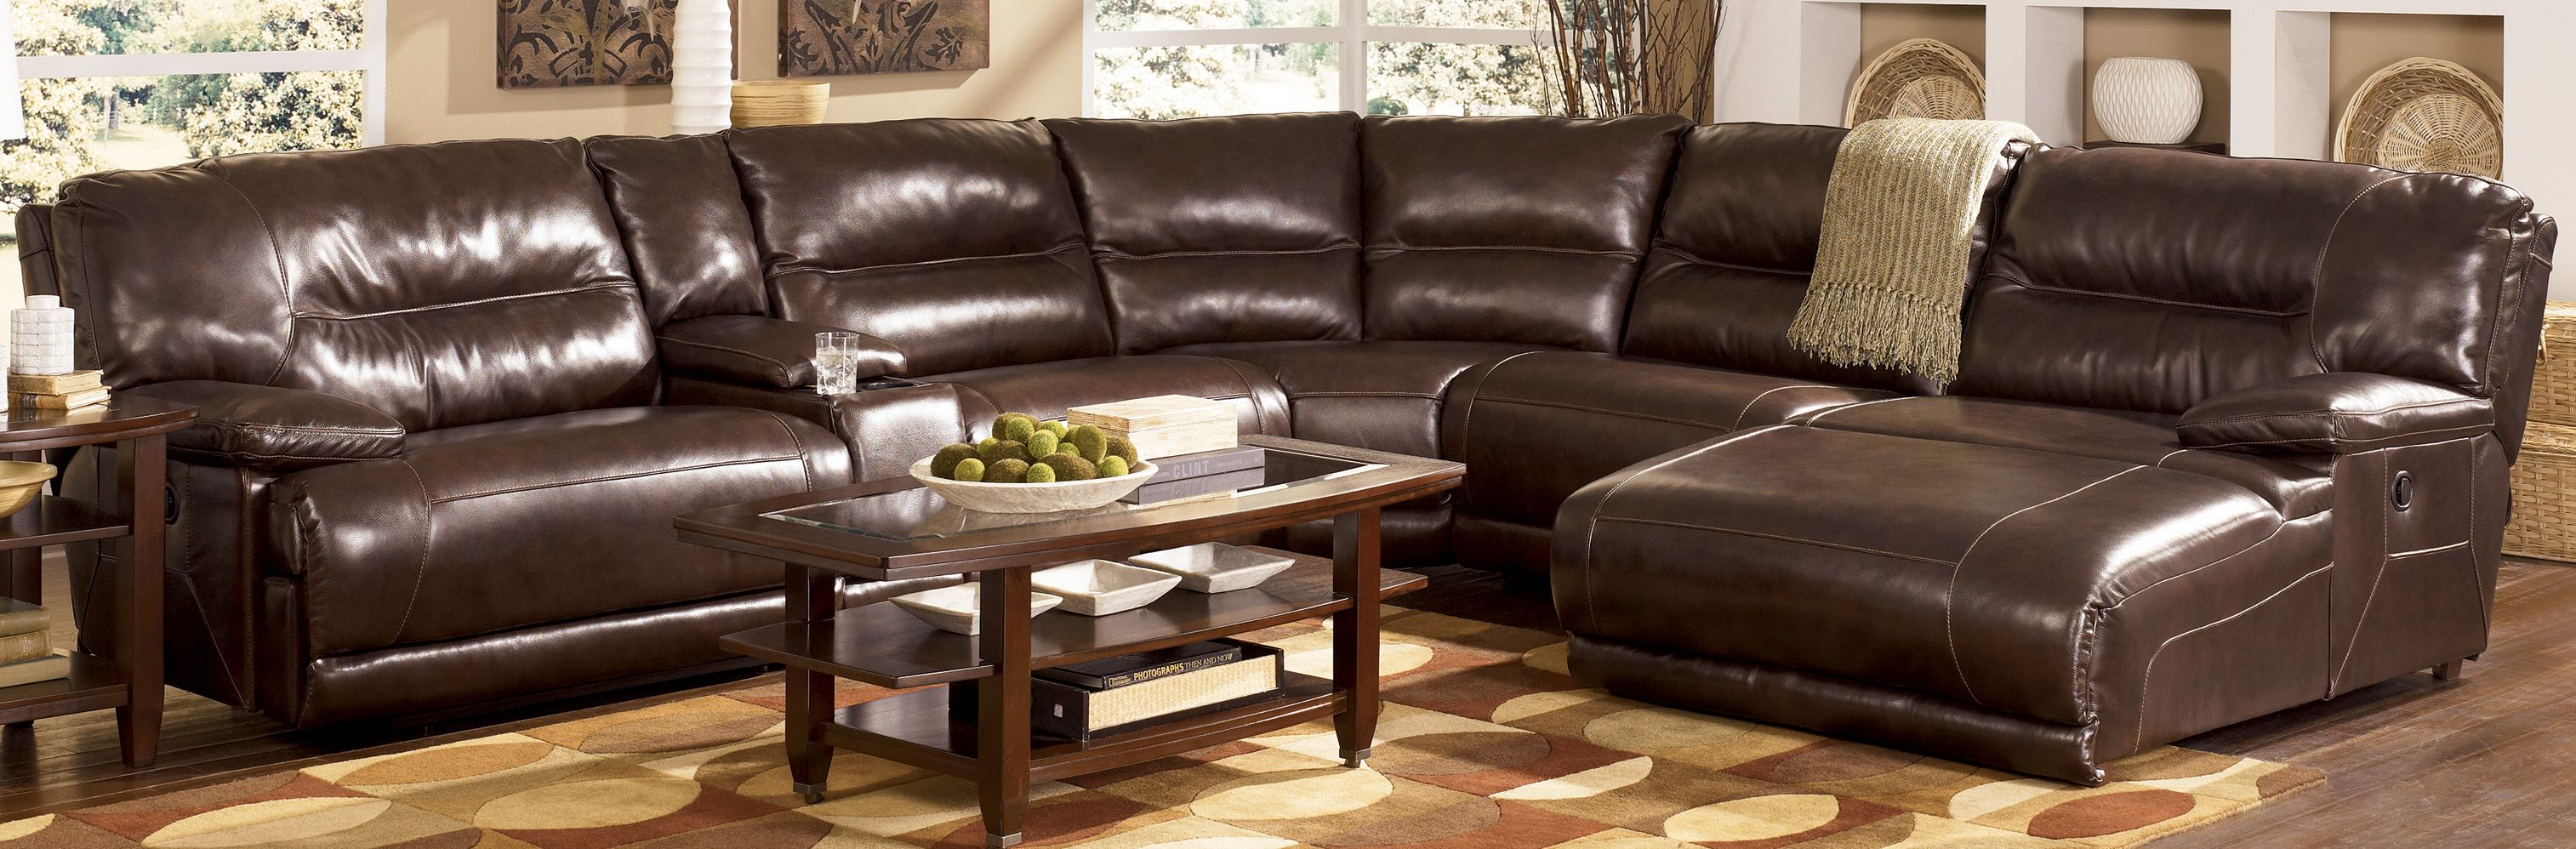 Best Brown Leather Sectional With Chaise Bing Images 400 x 300